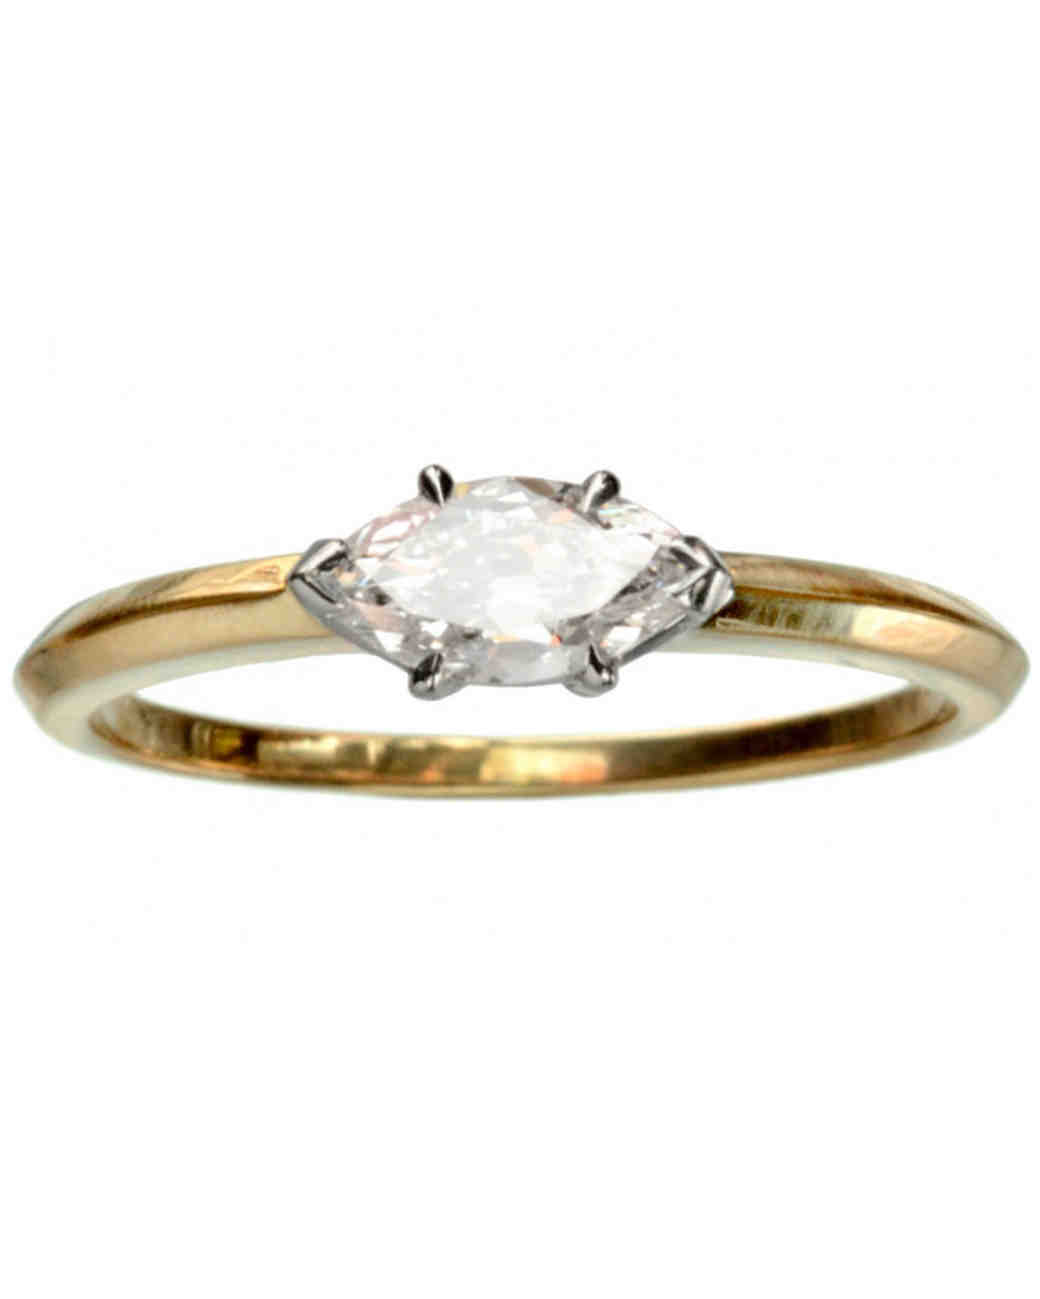 Erie Basin Marquis-Cut East-West Engagement Ring with Gold Band